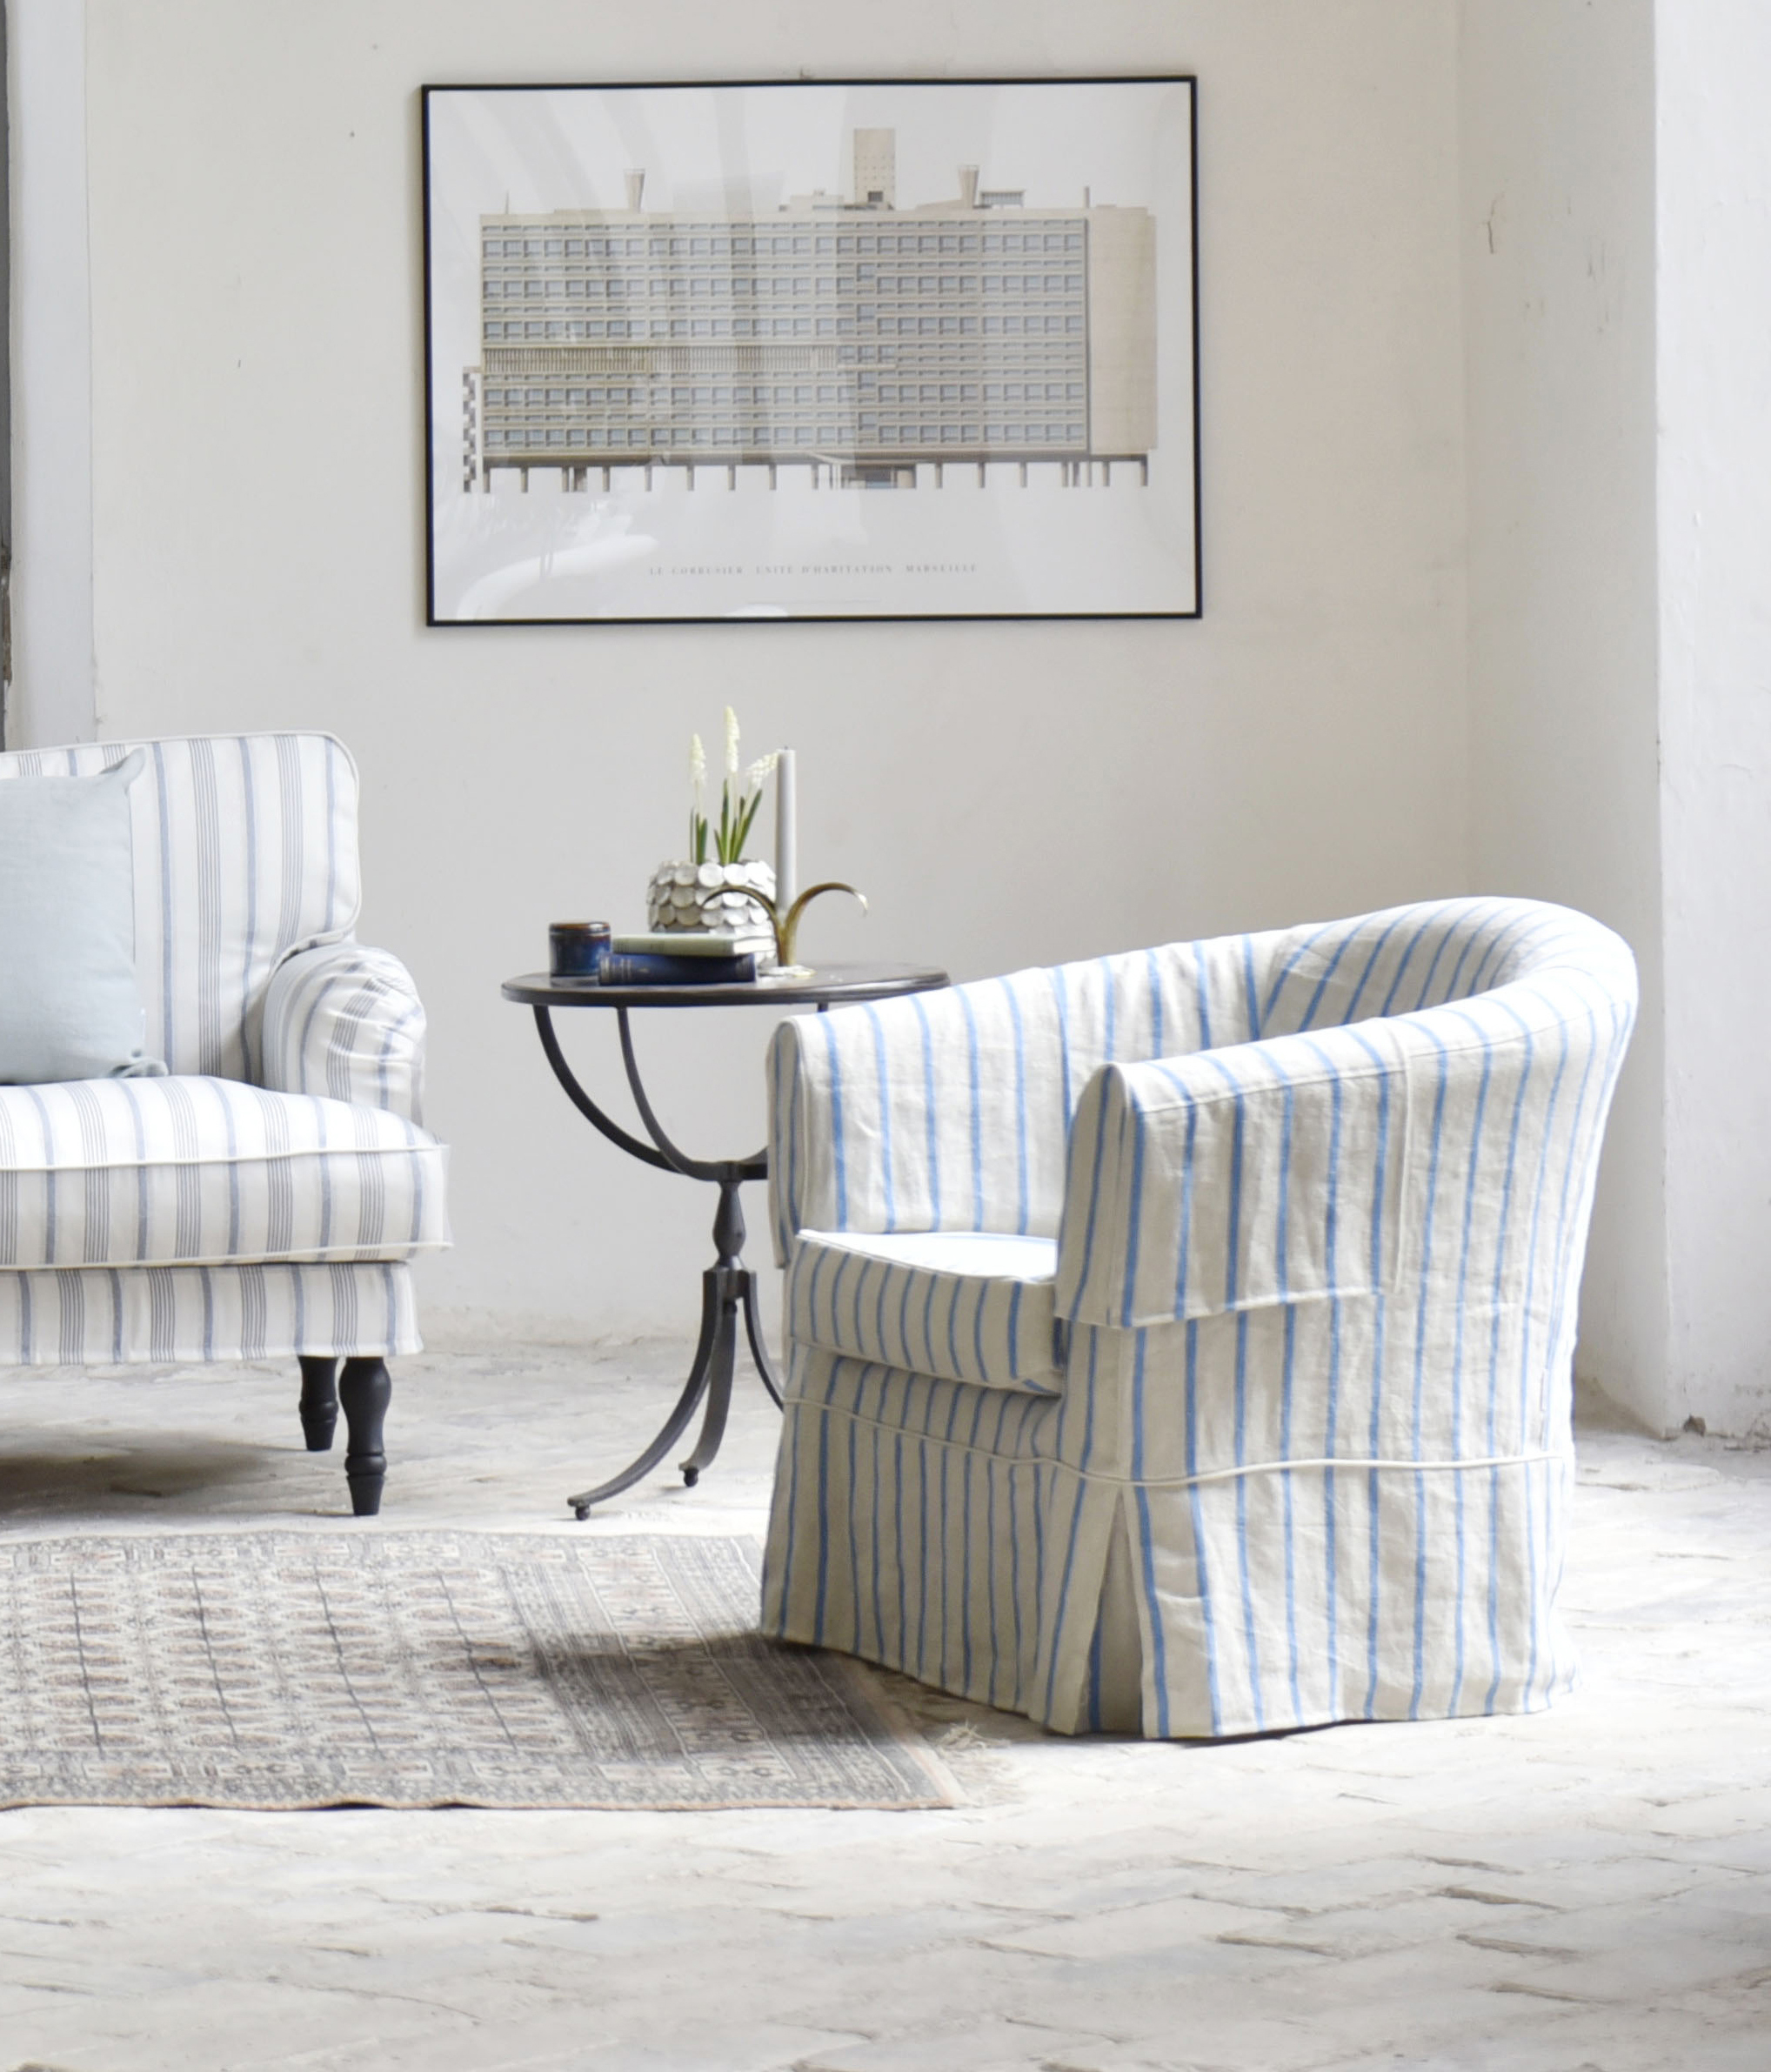 loose chair covers ikea plus size office chairs uk tullsta armchair cover fit b l u e s pinterest provencal vintage covered in bemz brera frino cobalt stripe shabby chic meets france